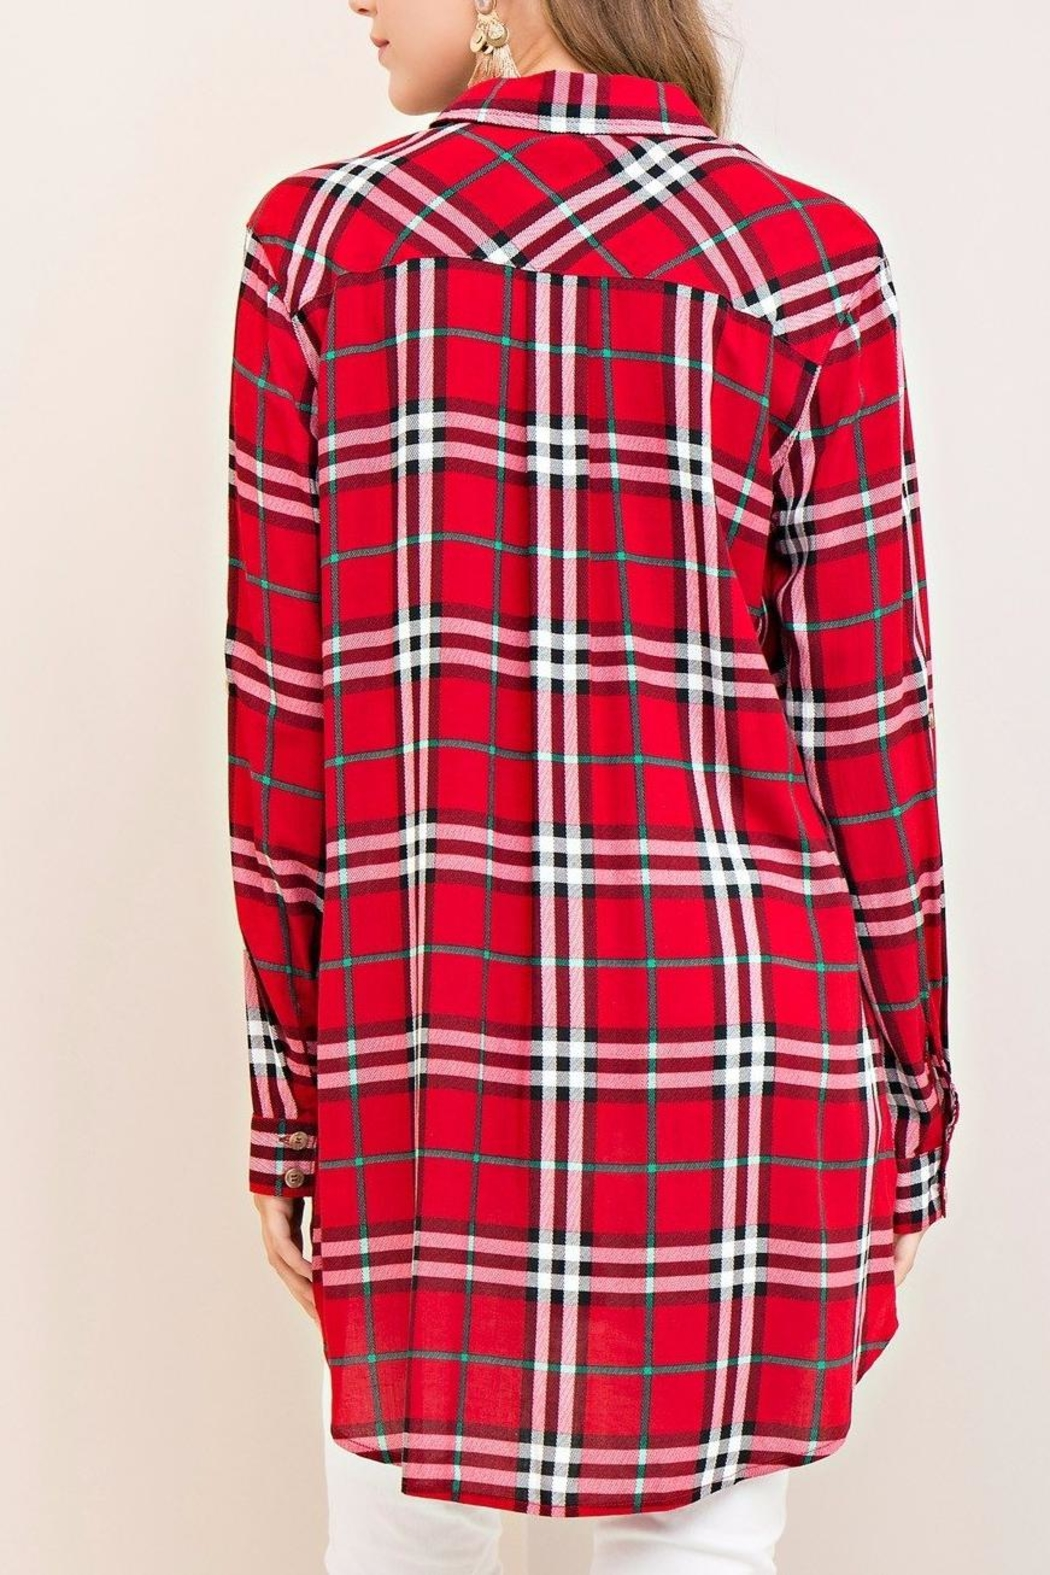 Entro Red Plaid Top - Back Cropped Image